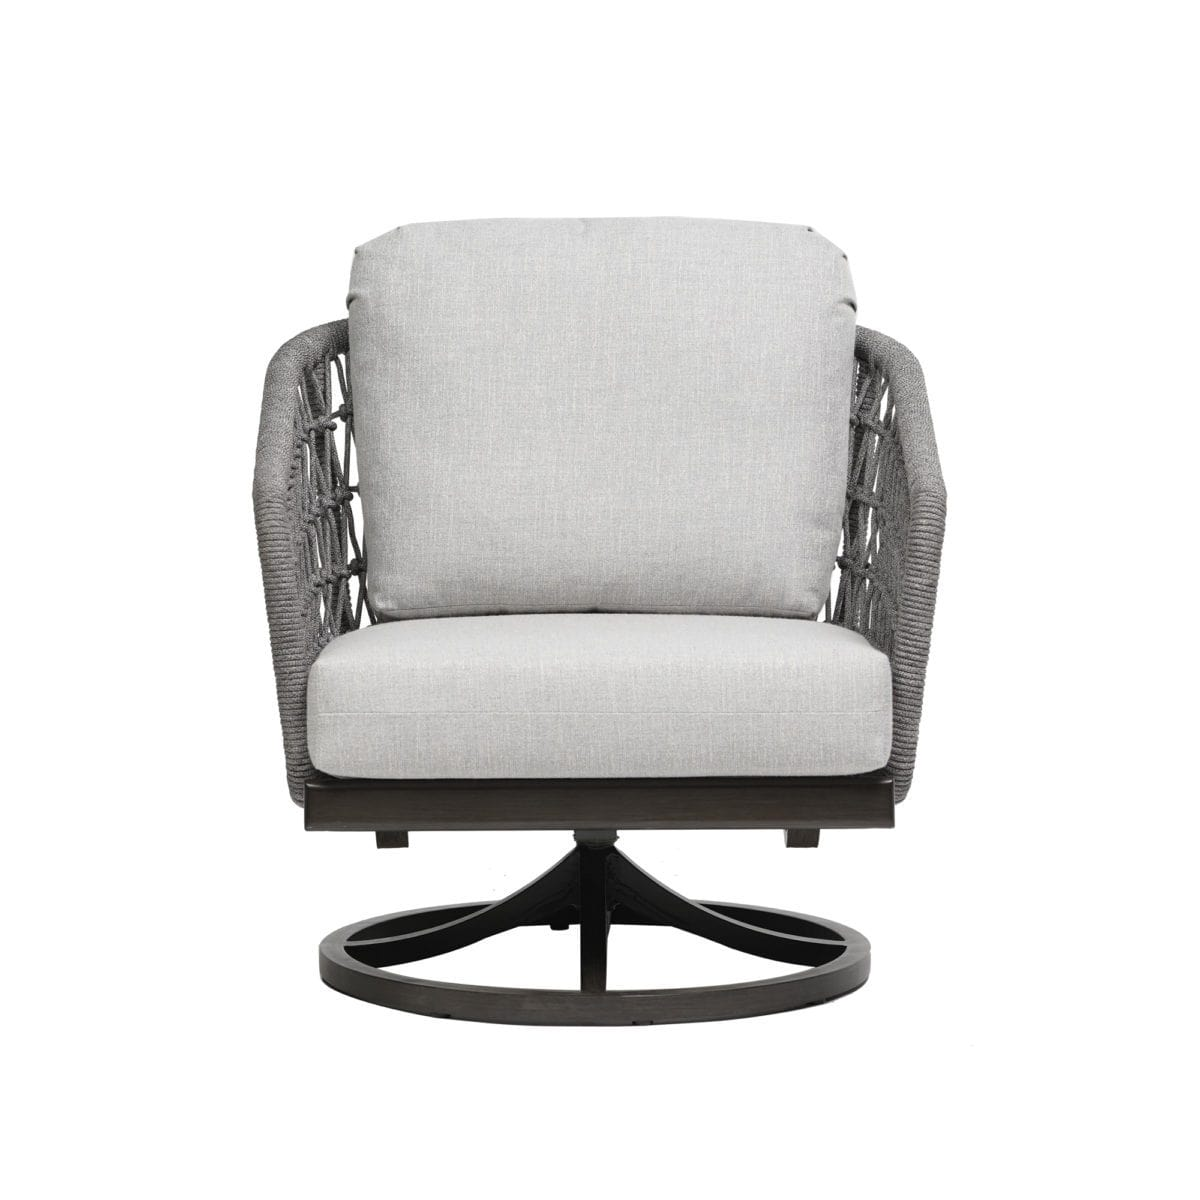 Ratana Swivel Rocker Poinciana Swivel Rocker